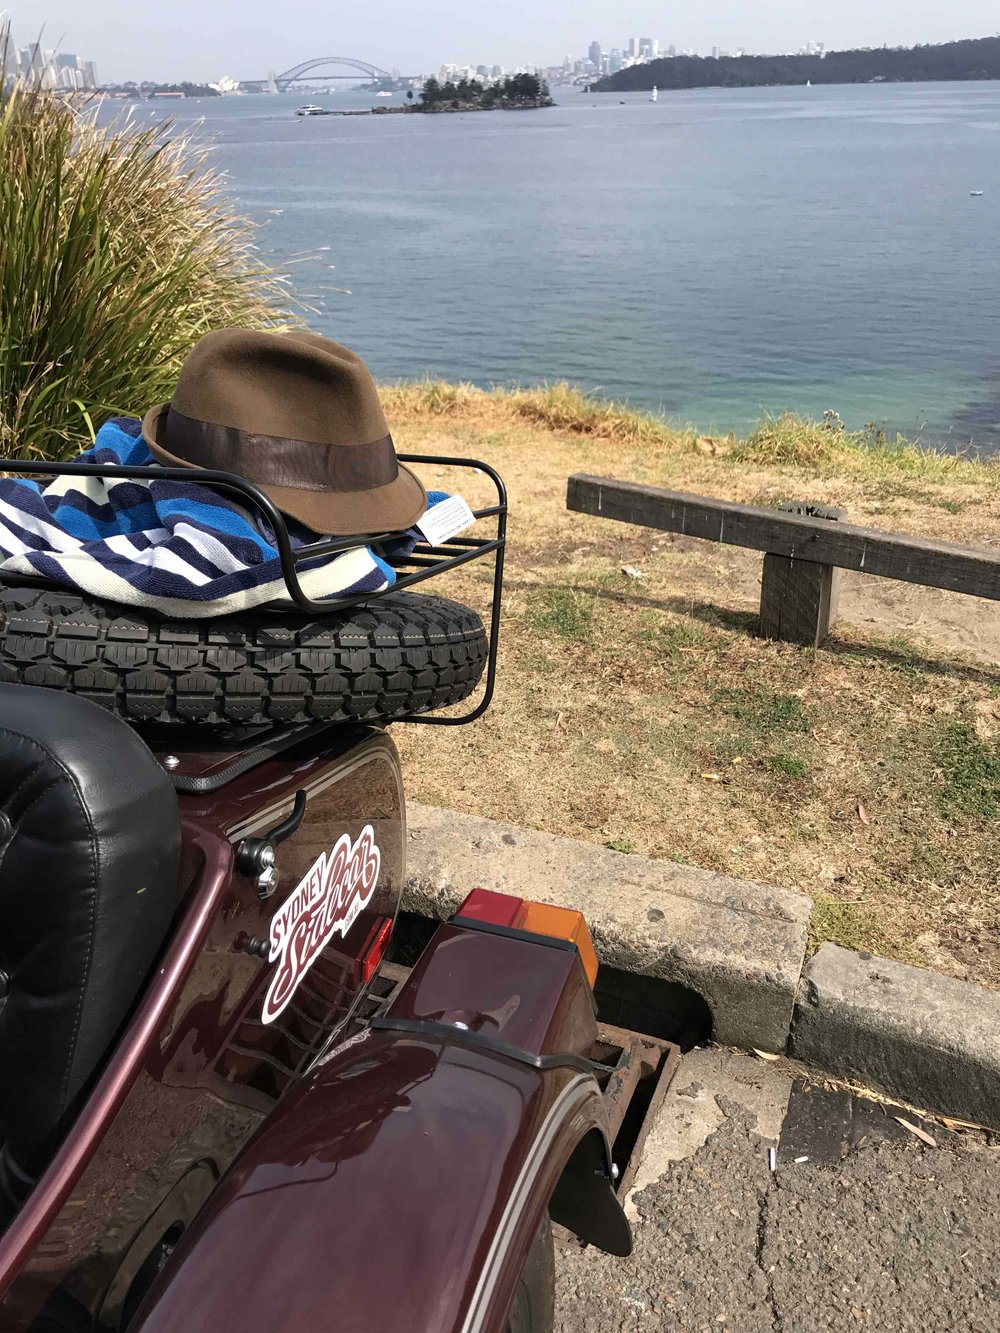 secluded-harbour-beach-sydney-sidecar-experience-tours.jpg